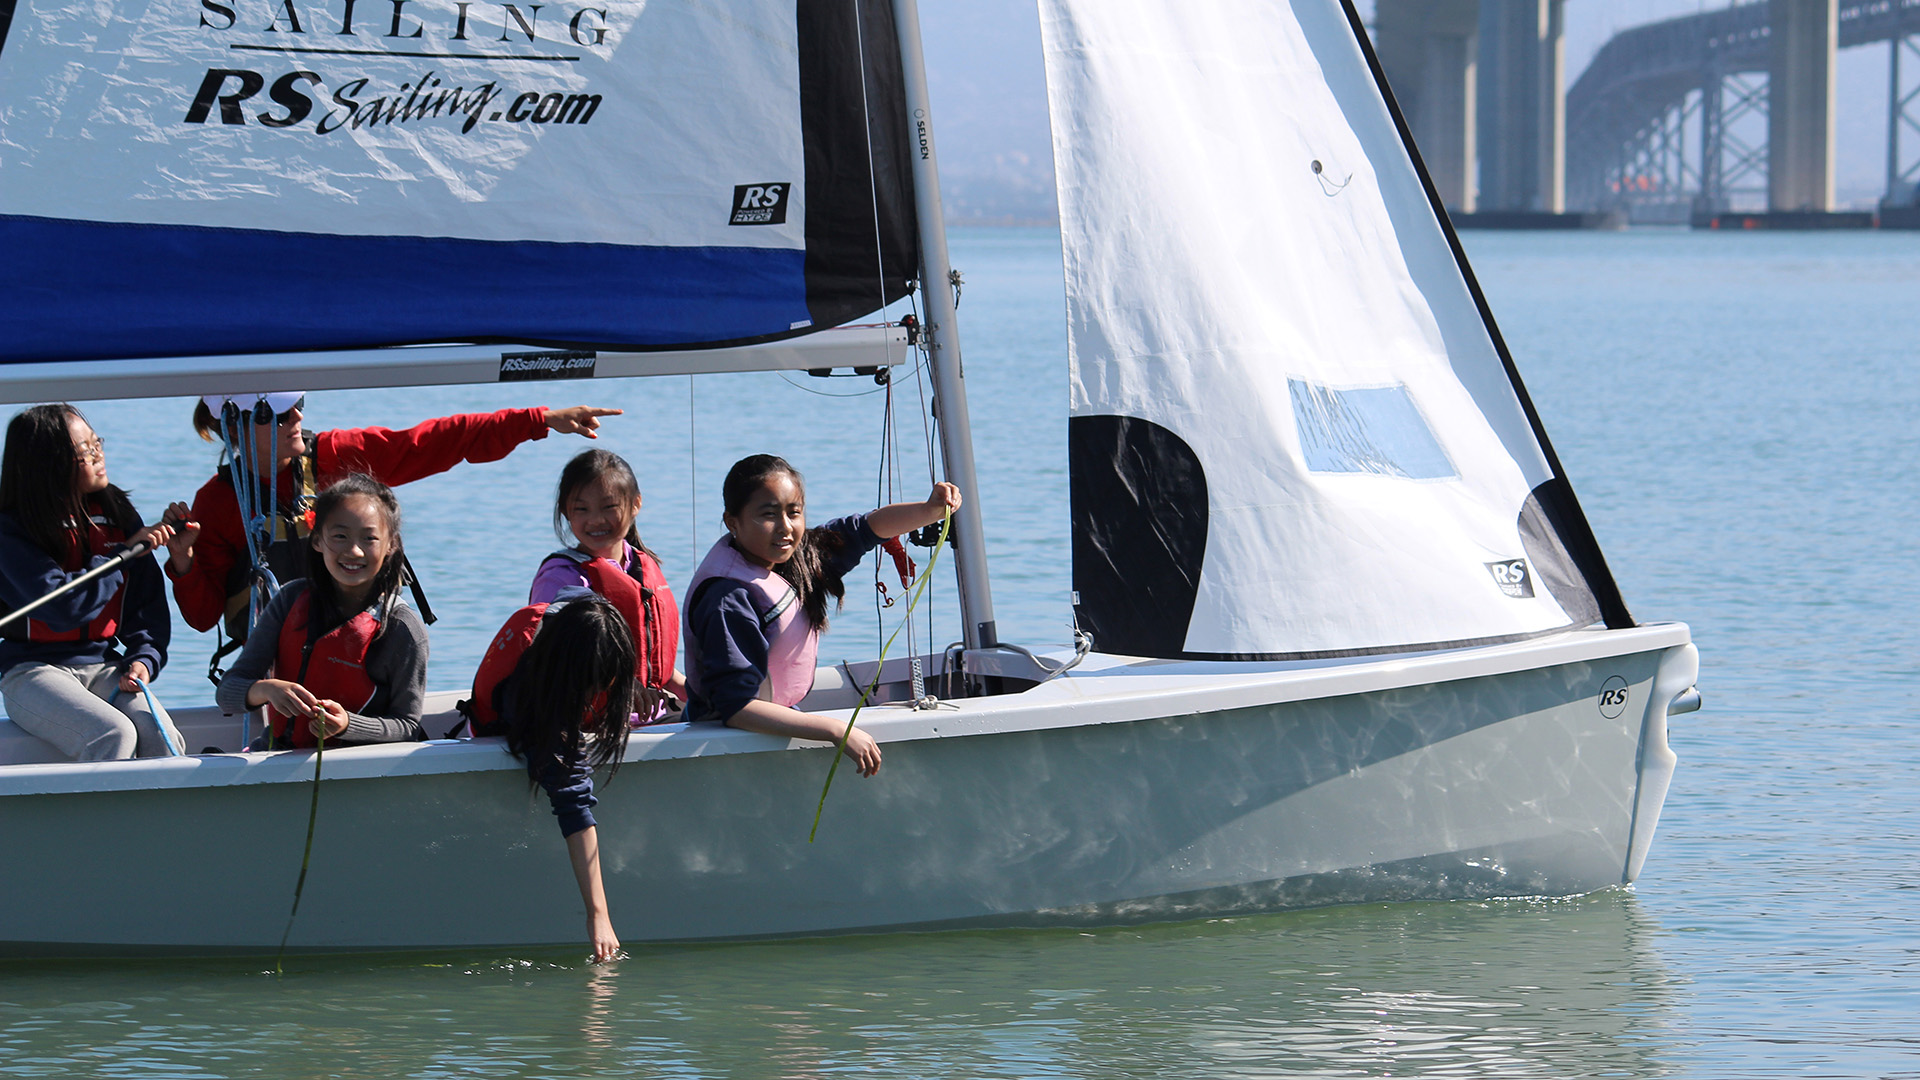 RS Venture –stability and exciting features than almost any other dinghy